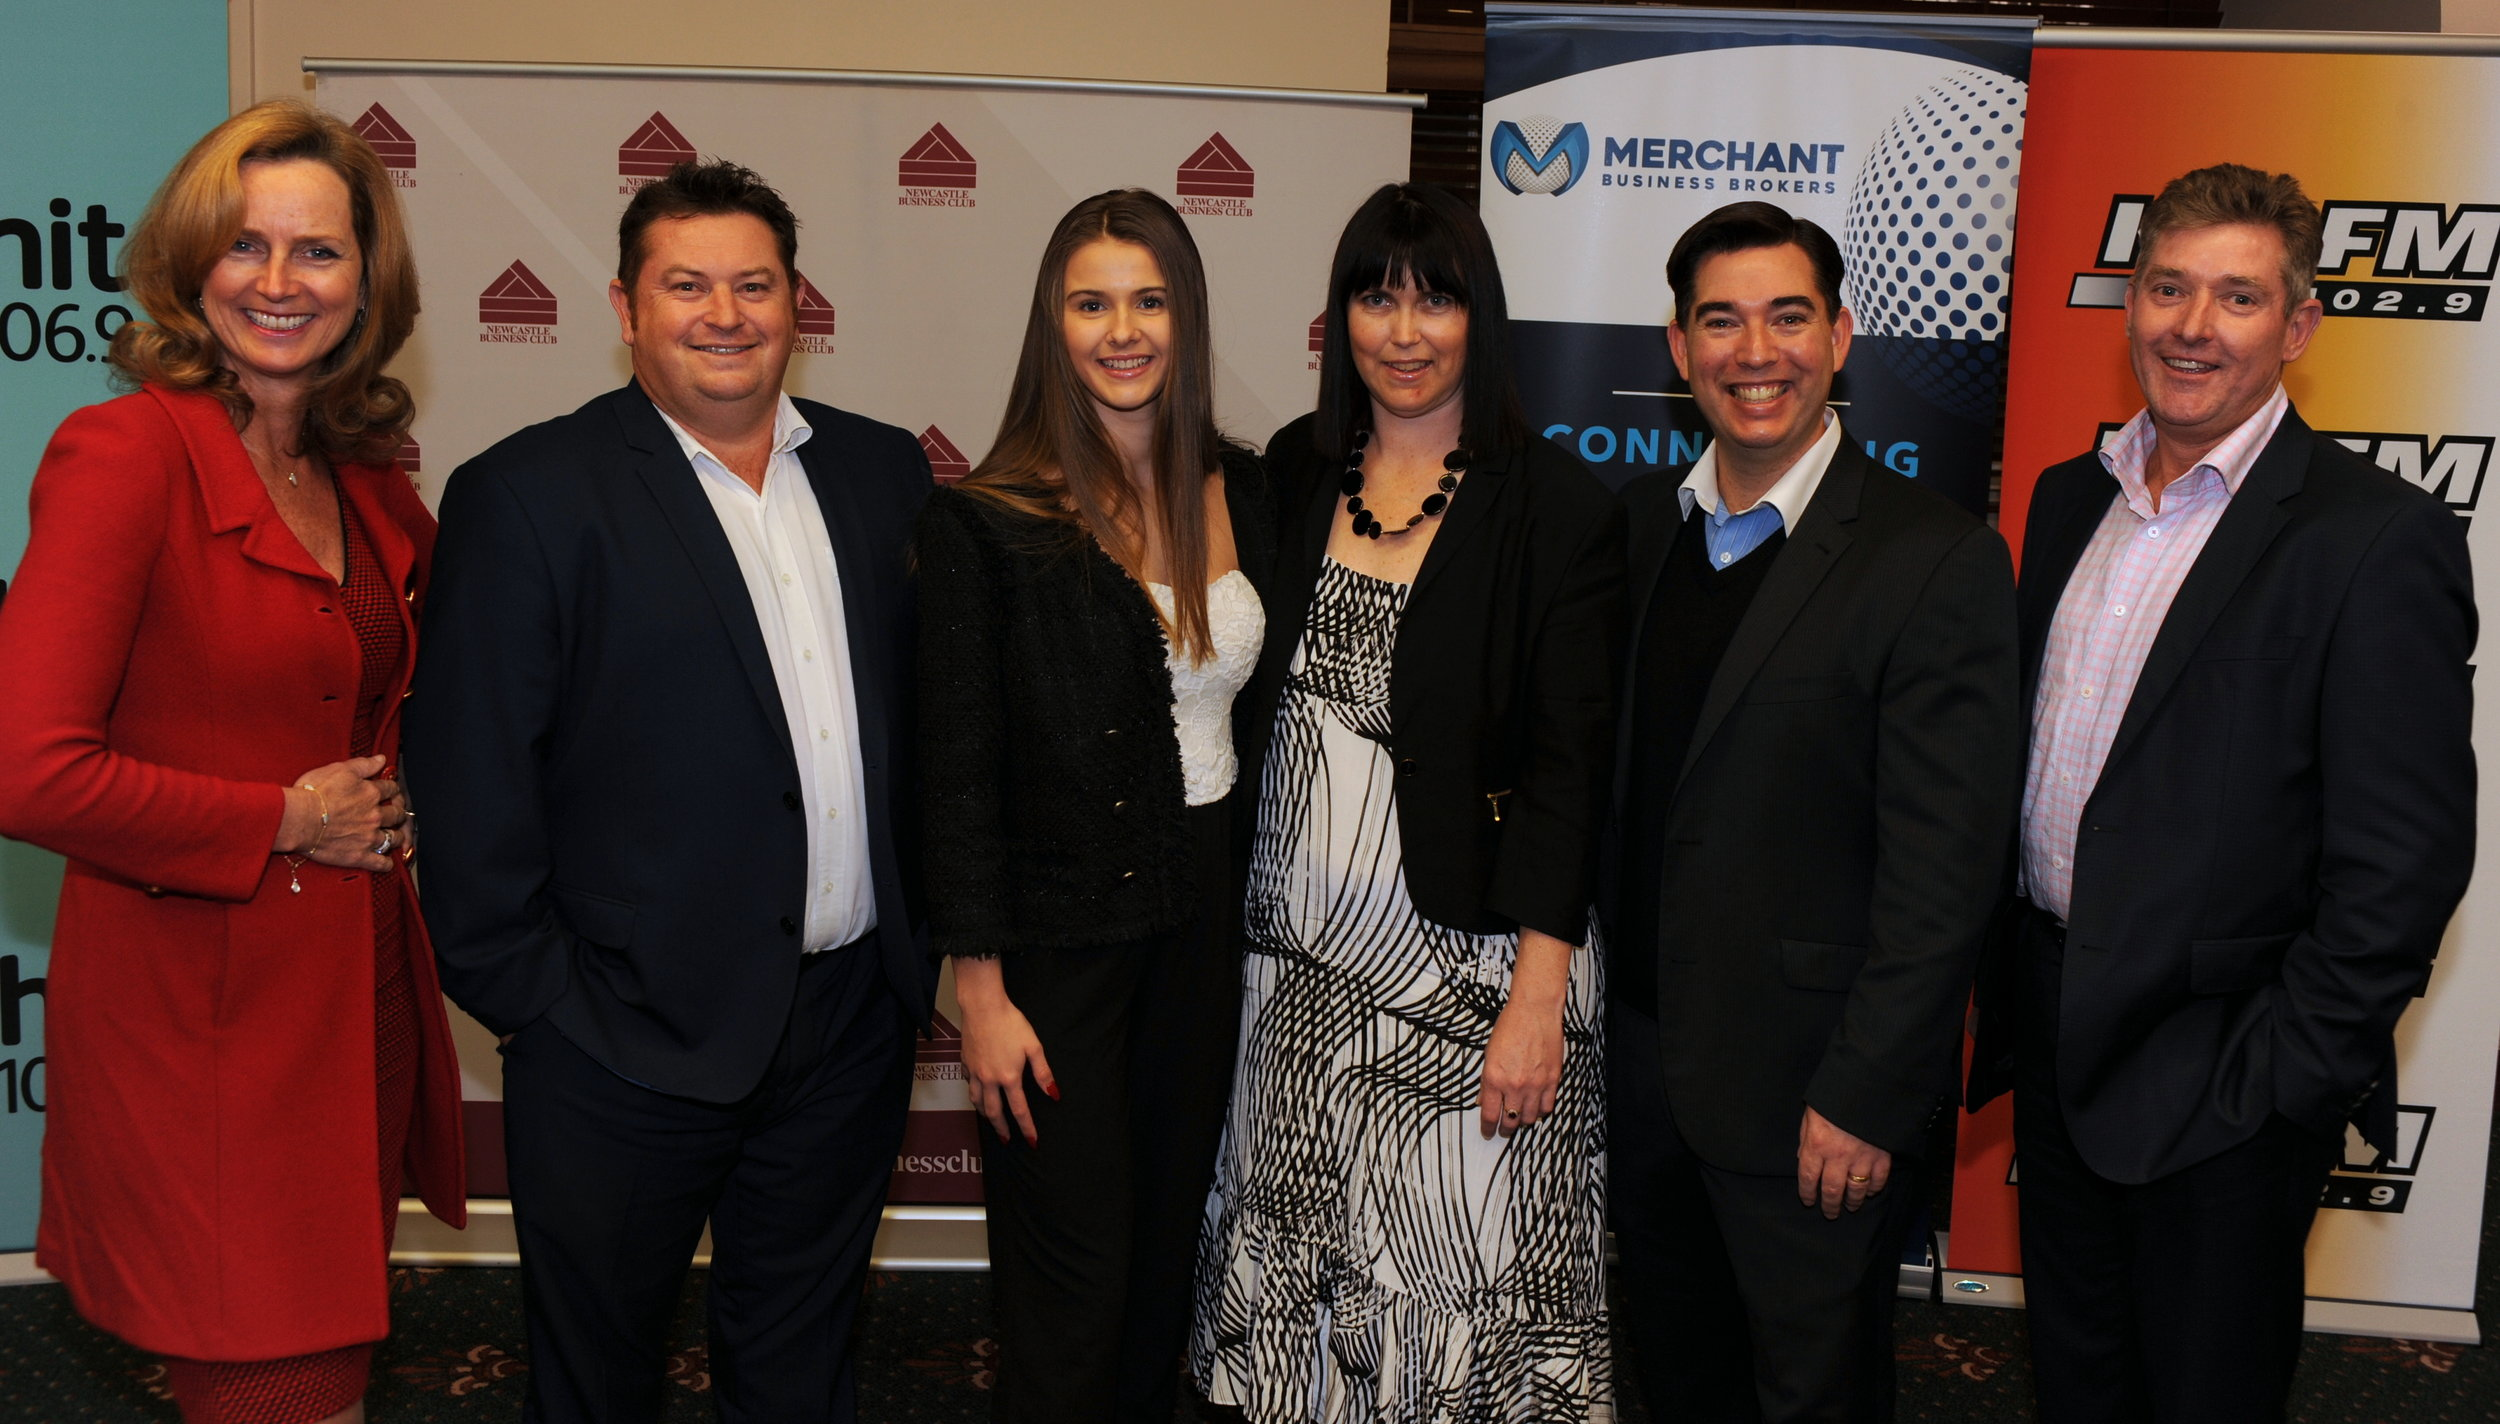 Kylie Wiblen (3rd from Right) pictured with Shark Tank hosts.